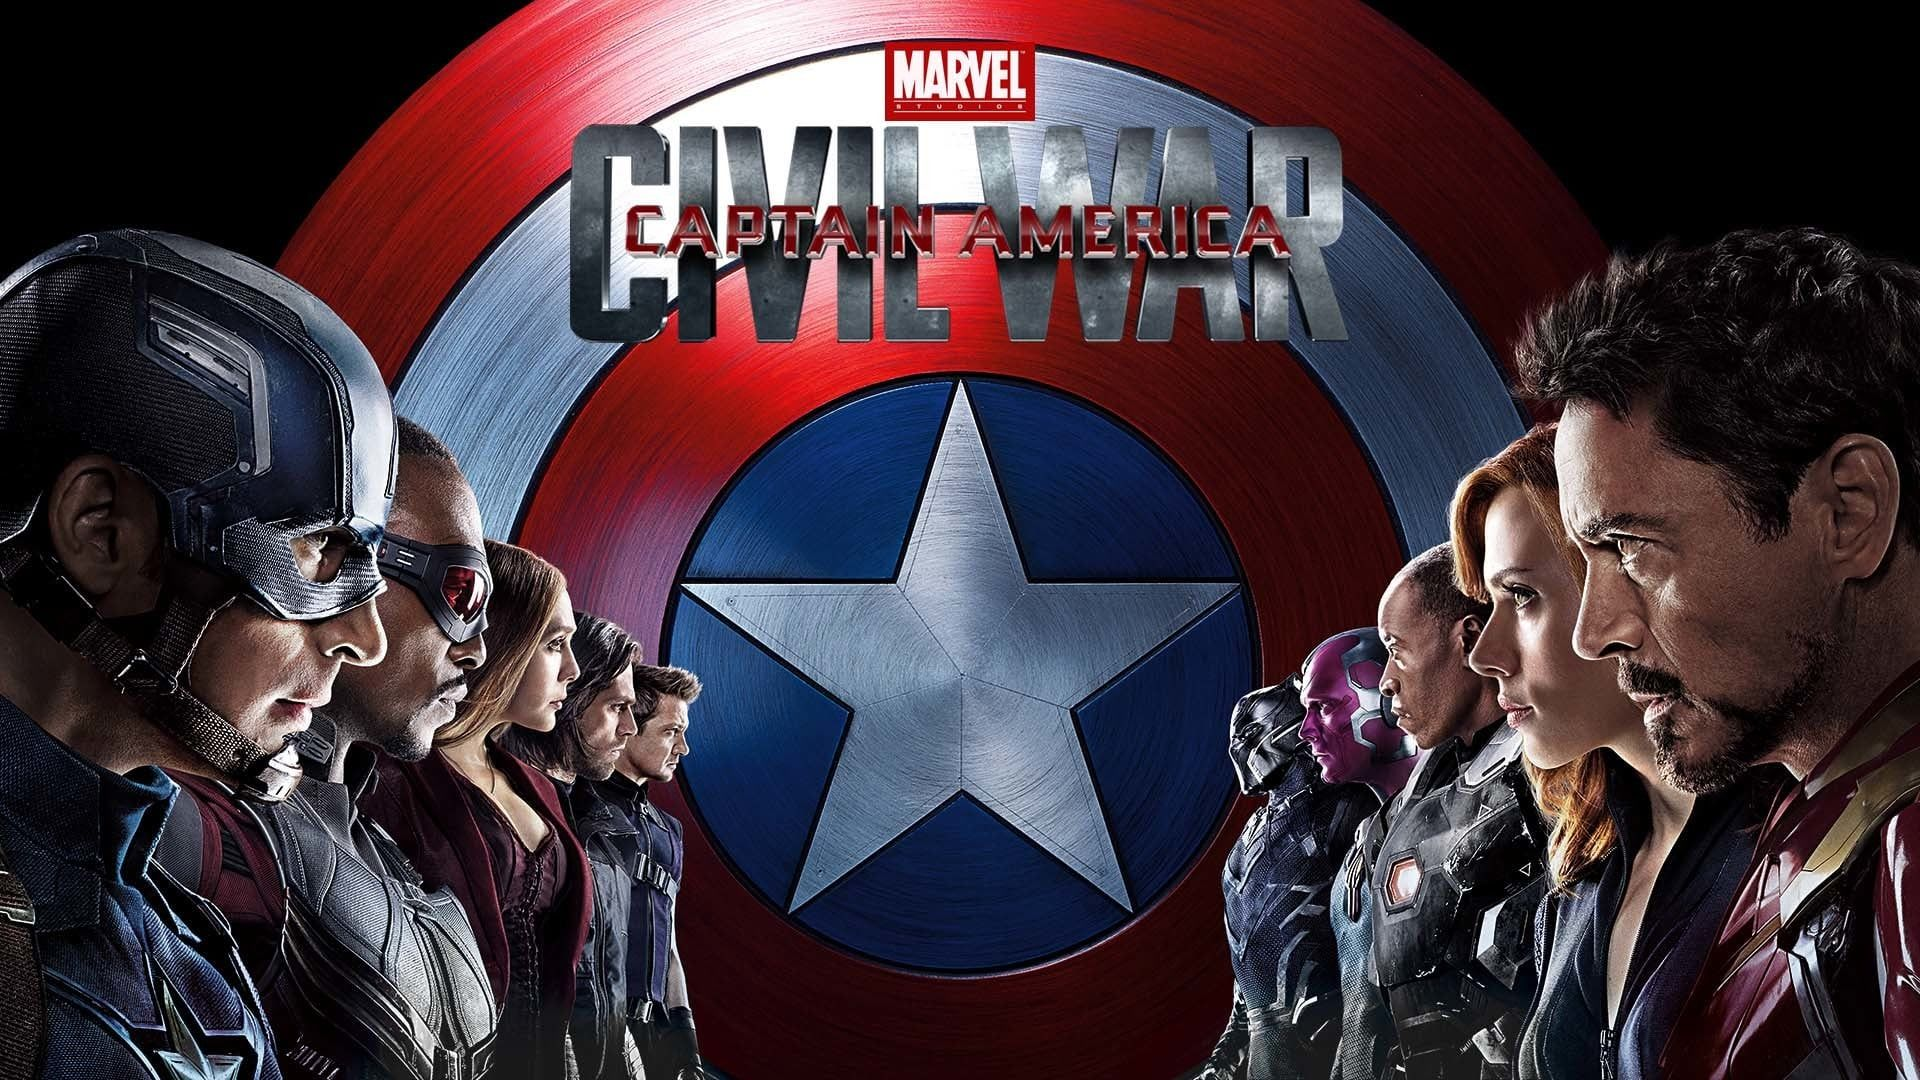 The First Avenger Civil War 2016 Ganzer Film Stream Deutsch Komplett Online The First A Captain America Full Movies Online Free Captain America Civil War